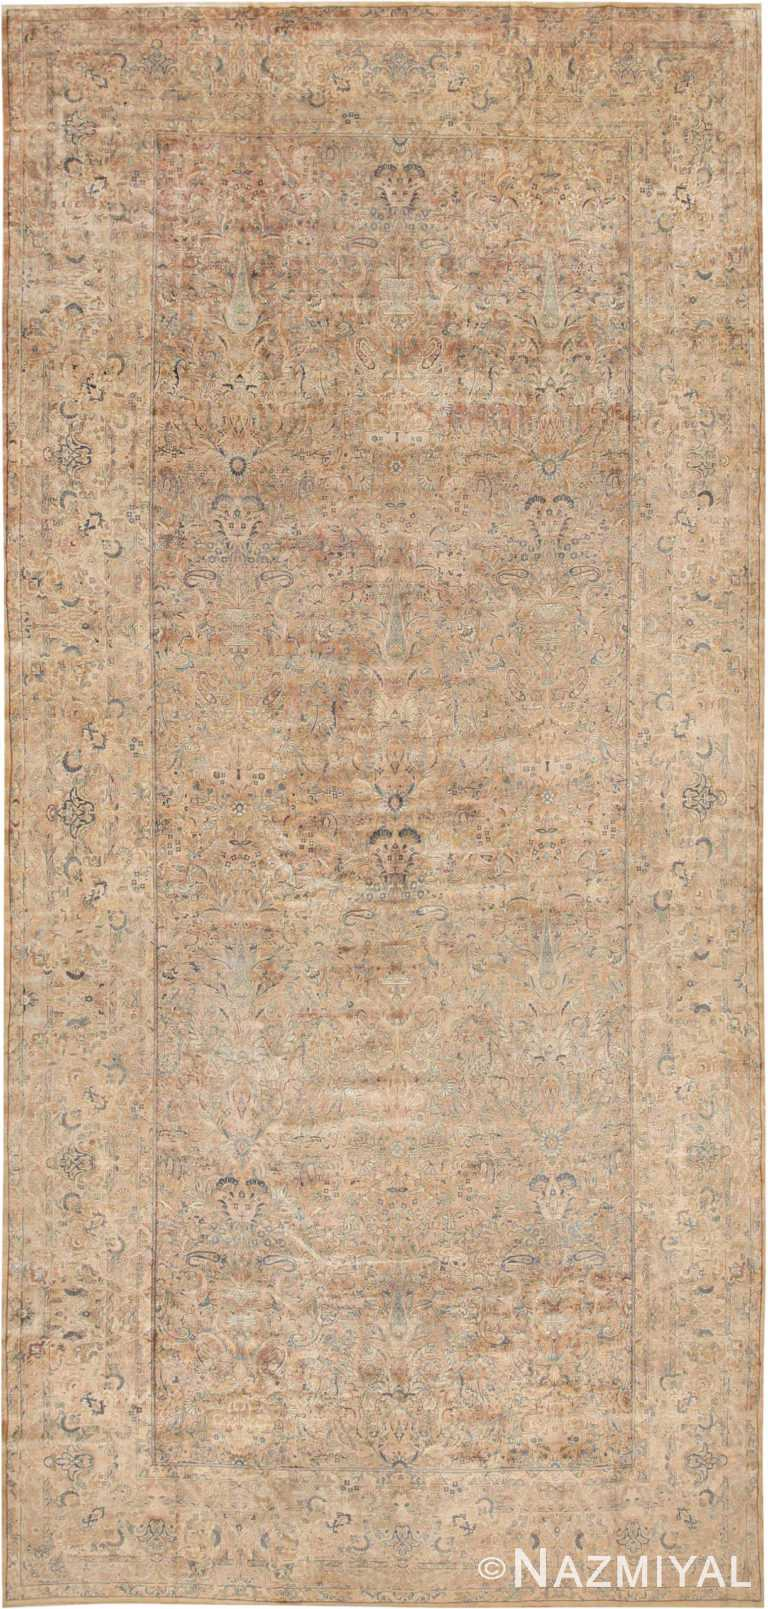 Washed Out Oversized Antique Kerman Persian Rug #48986 by Nazmiyal Antique Rugs